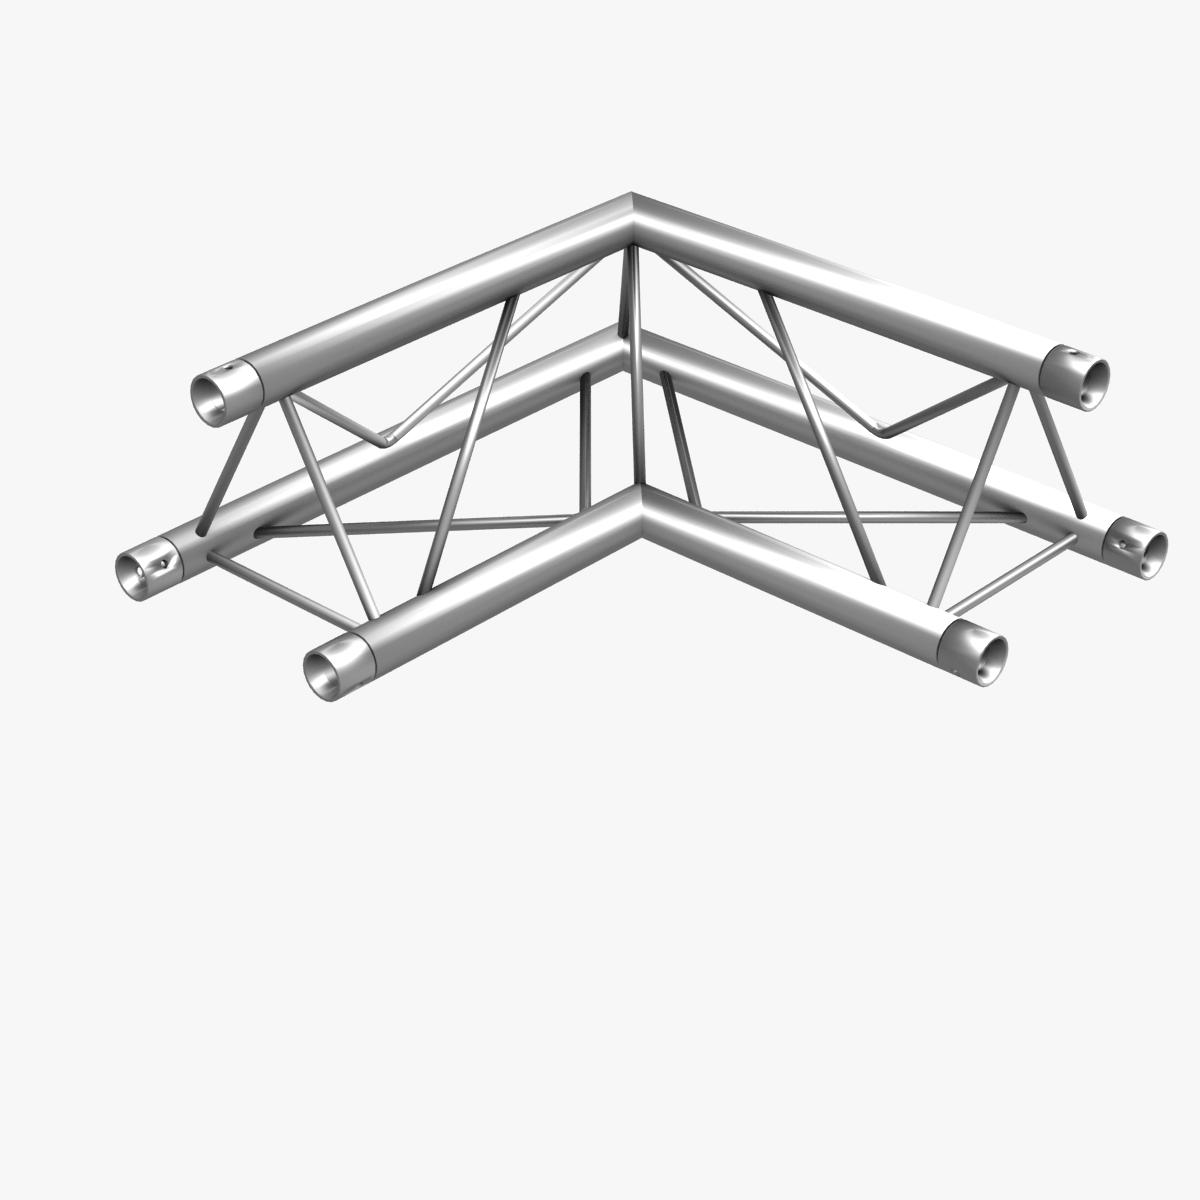 Triangular trusses collection 55 modular pieces 3d model for Buy trusses